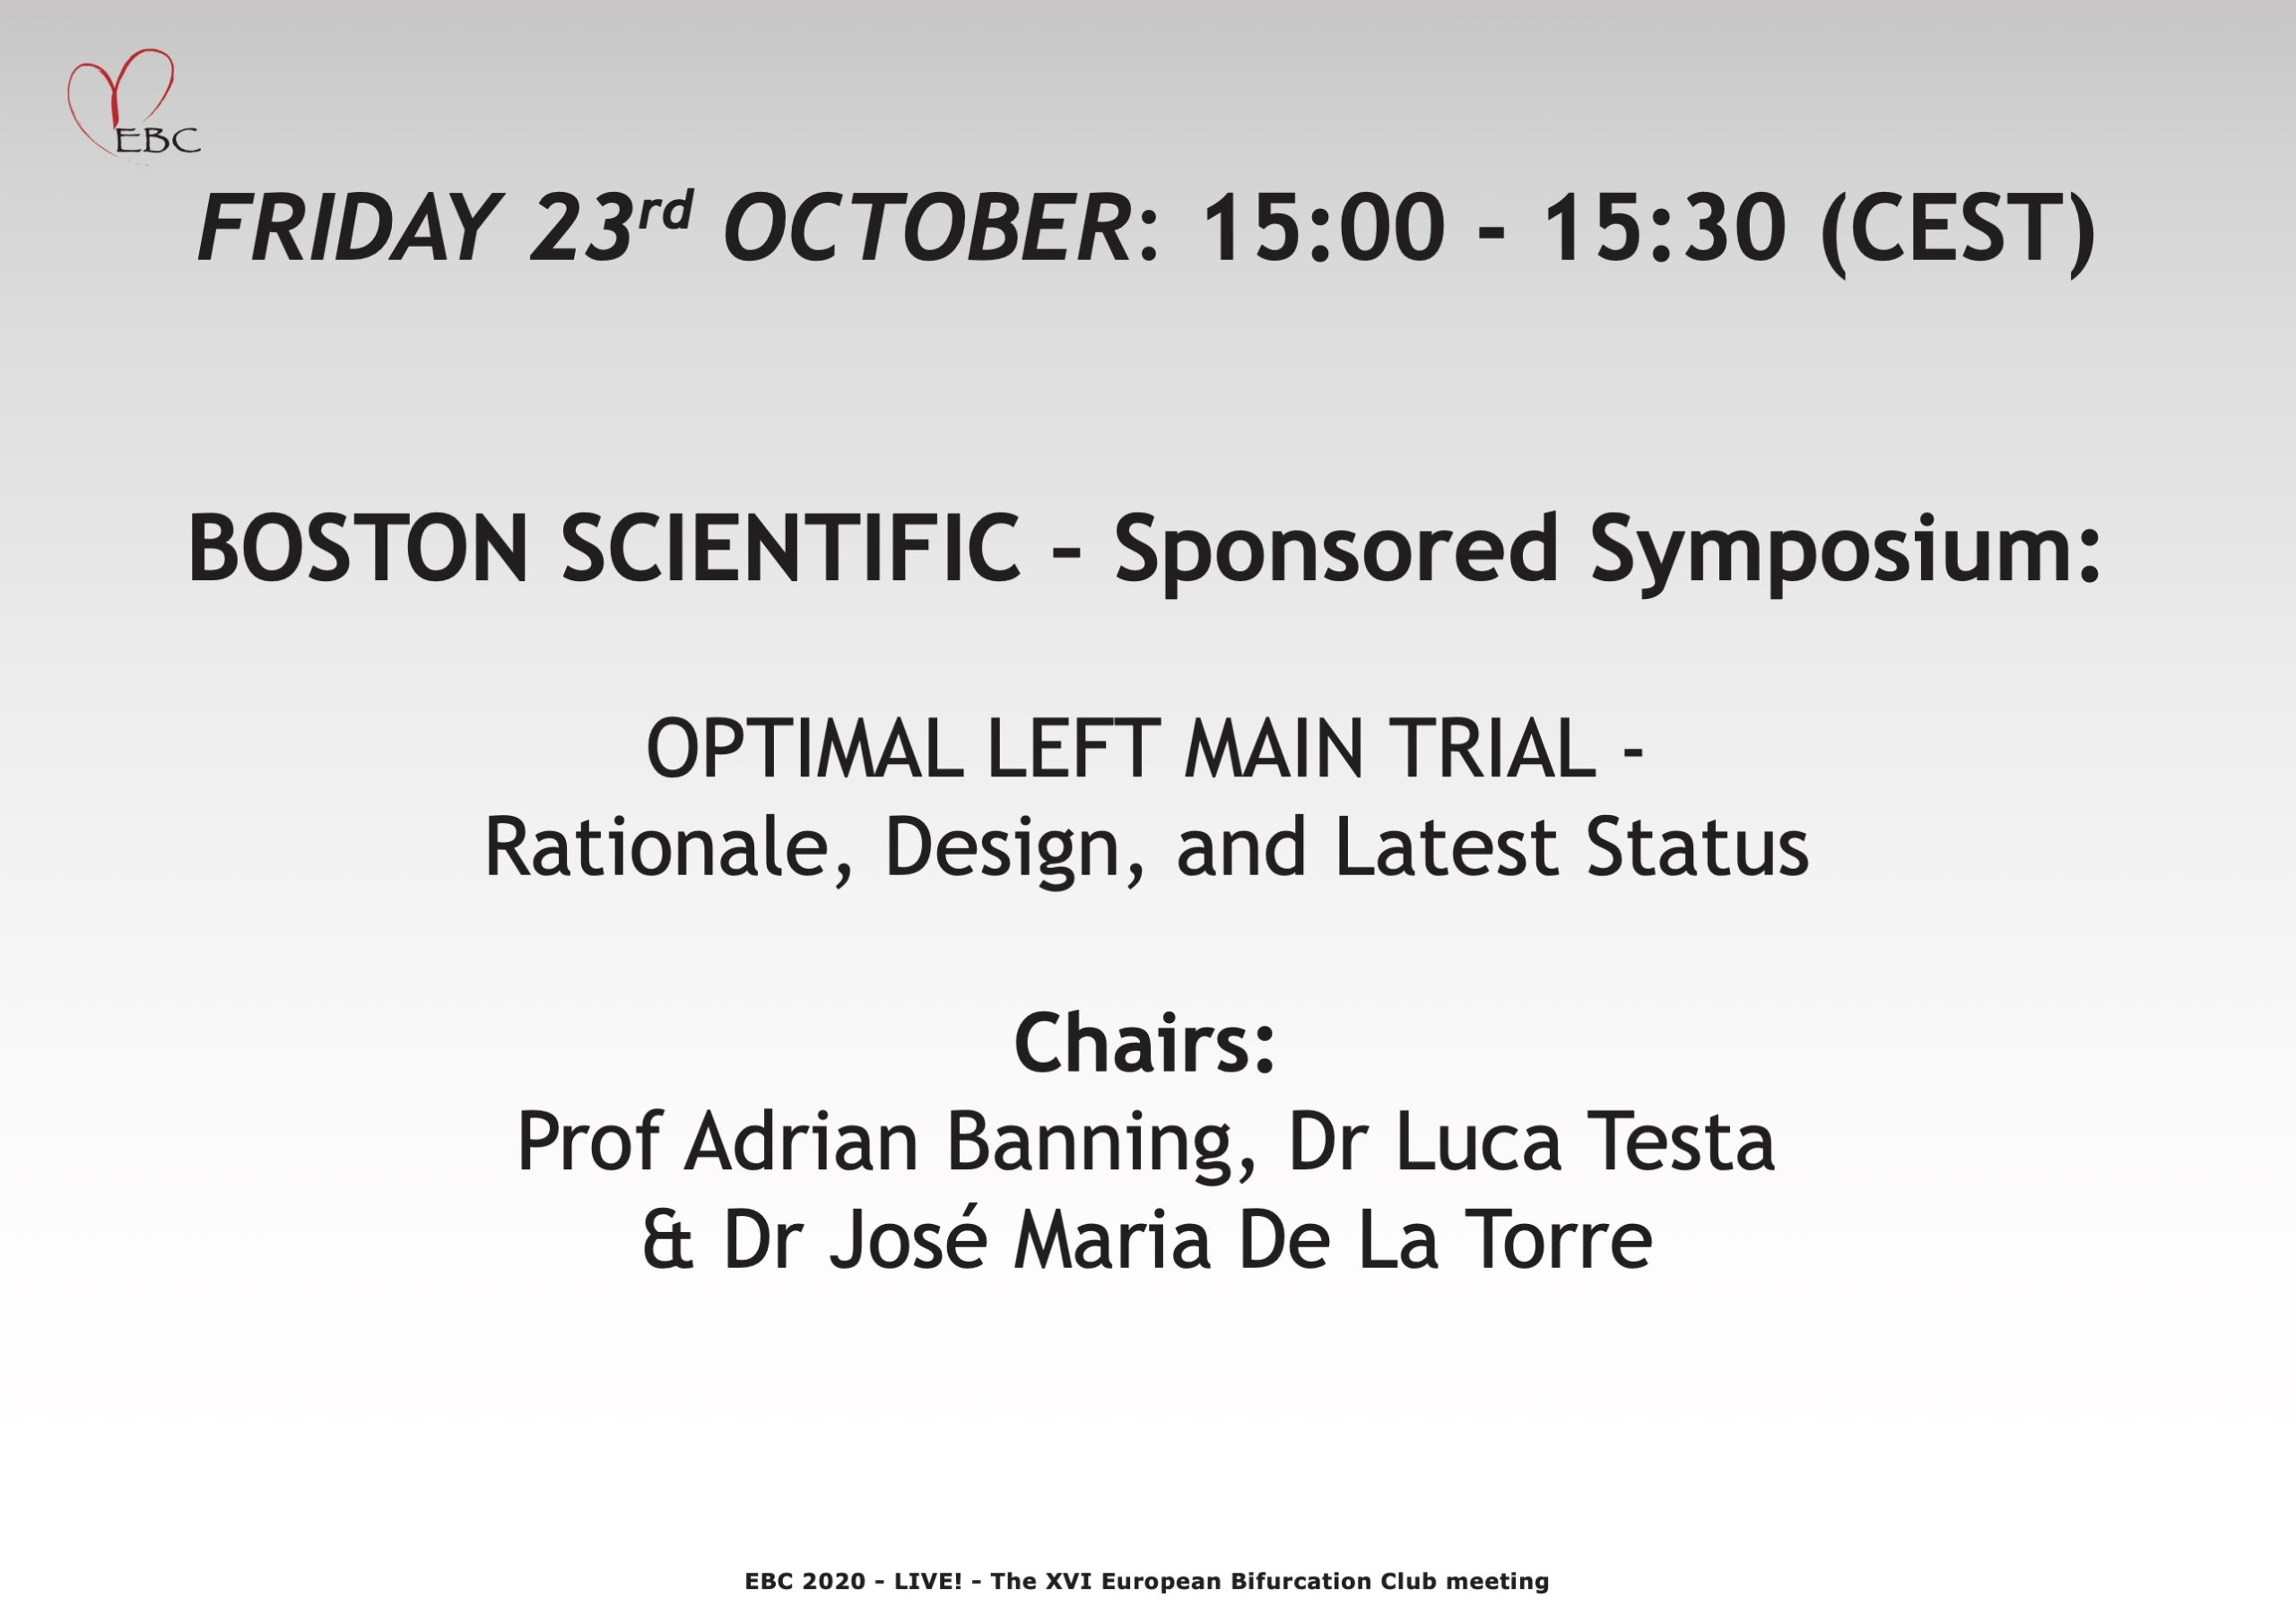 BOSTON – OPTIMAL LEFT MAIN TRIAL – Rationale, Design, and Latest Status